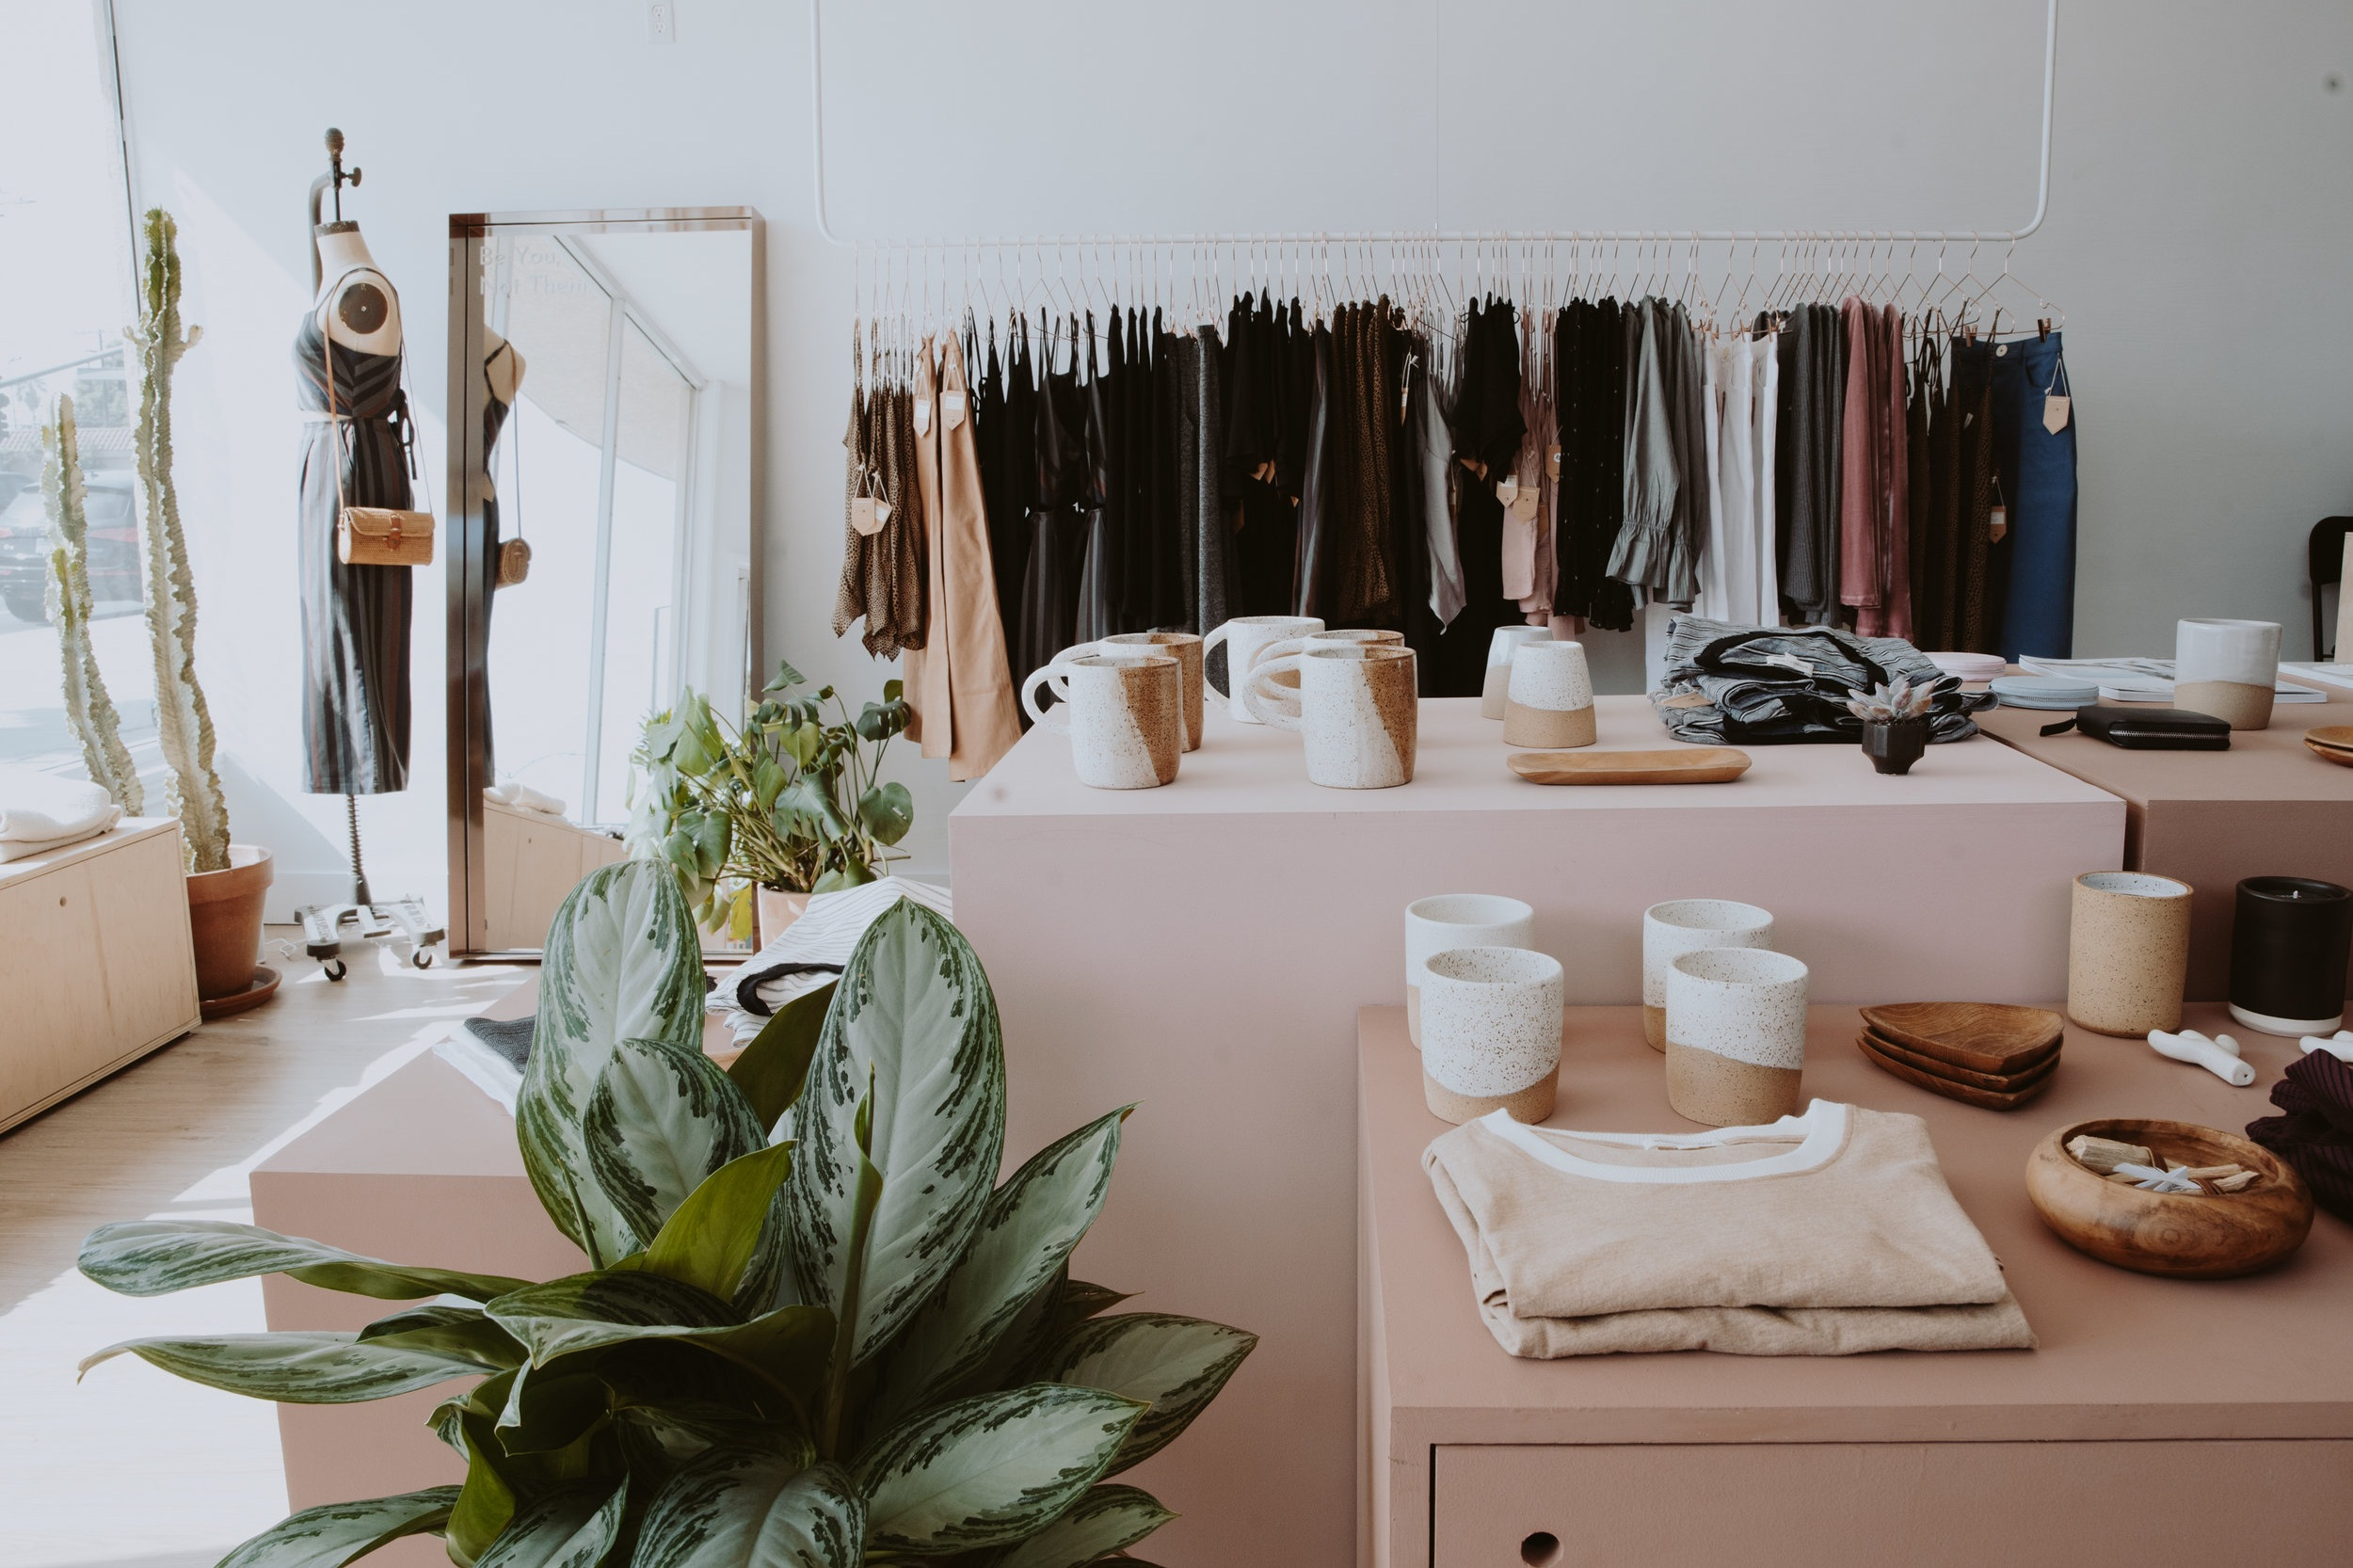 WHIMSY + ROW - Mar VistaBirthed out of a love for quality made goods and sustainable practices, Whimsy + Row's mission is to provide ease and elegance for the modern, creative woman. They use deadstock fabrics, don't use any water in production, and focus on making clothing that will last.